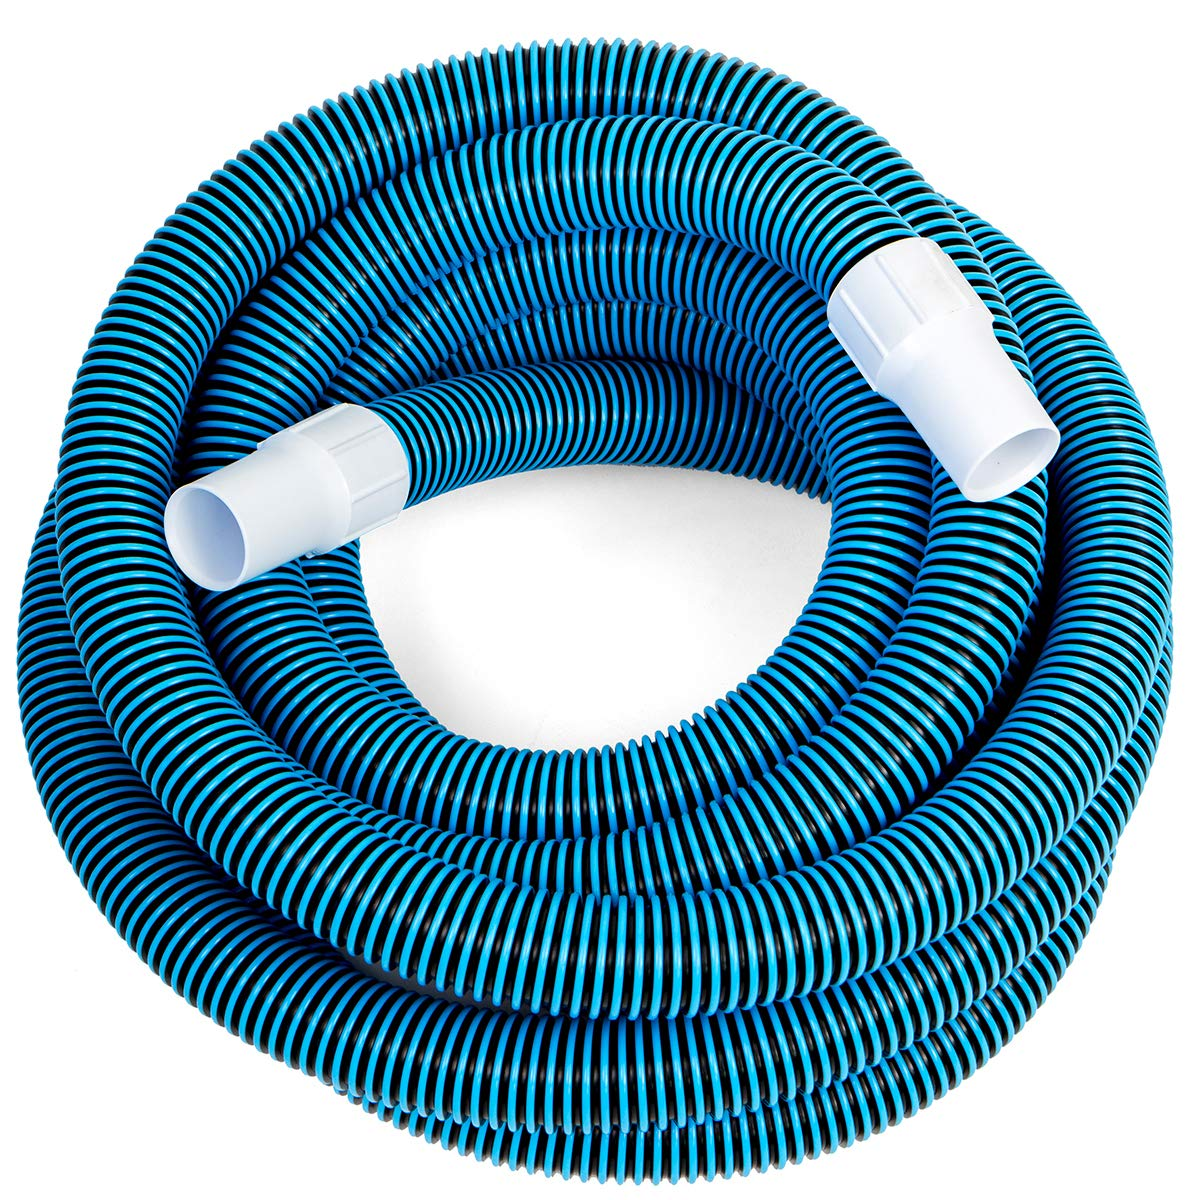 XtremepowerUS In-ground Swimming Pool Vacuum Hose, 1-1/2'' 30FT by XtremepowerUS